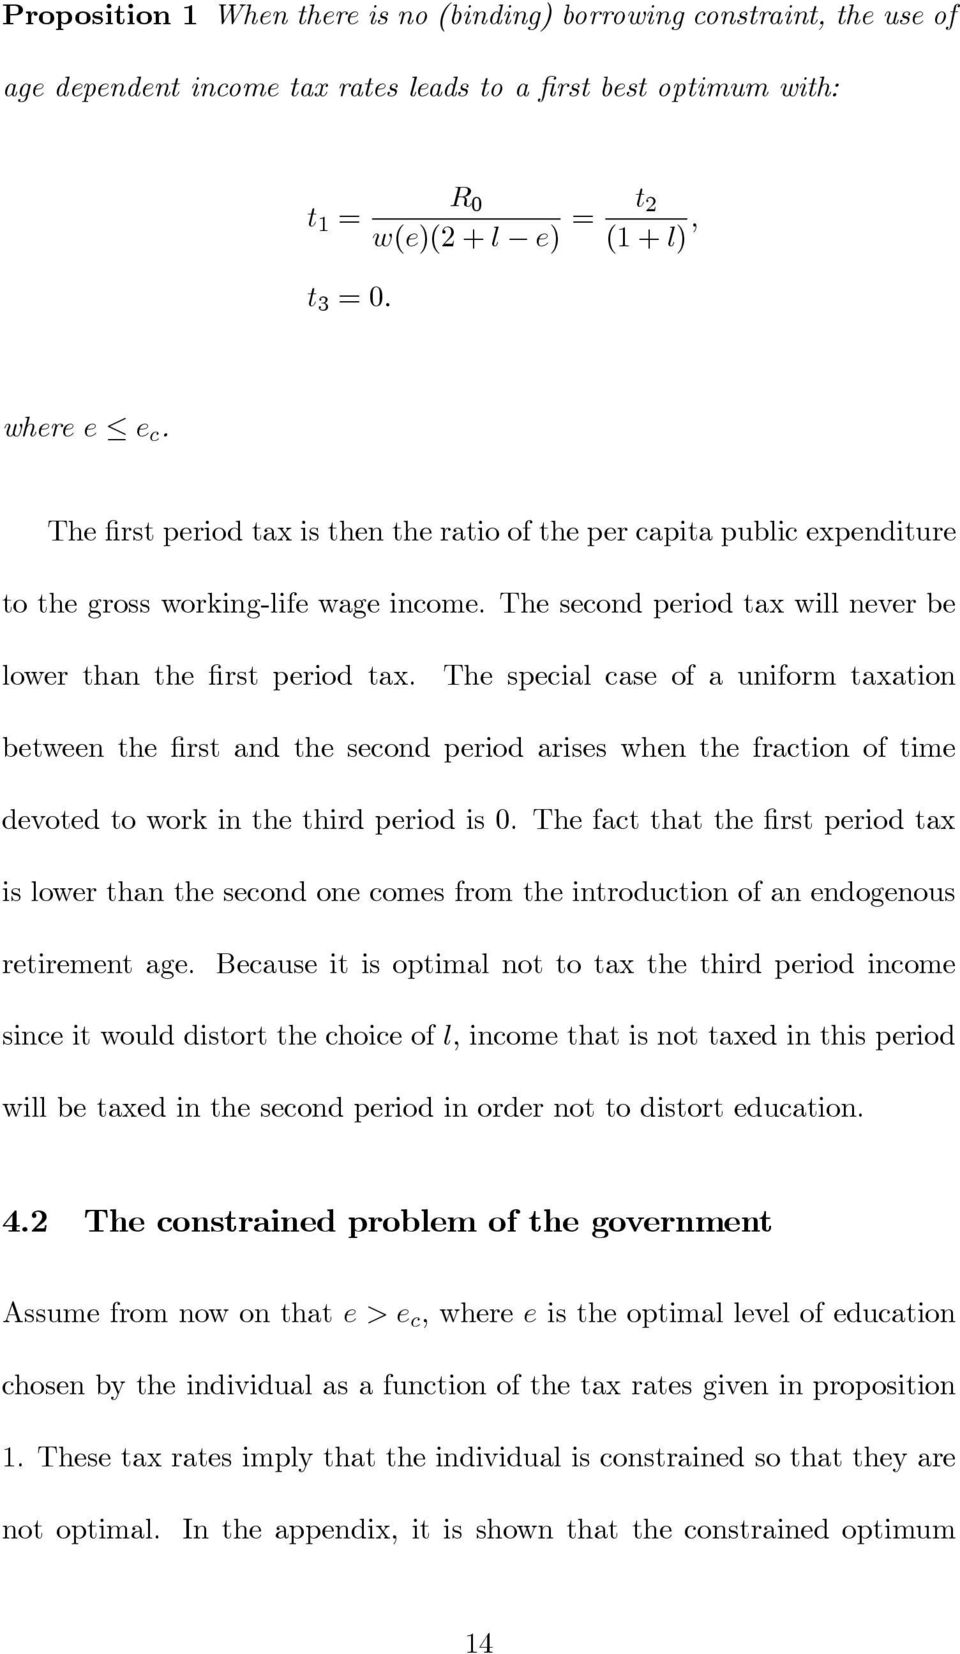 The special case of a uniform taxation between the first and the second period arises when the fraction of time devoted to work in the third period is 0.